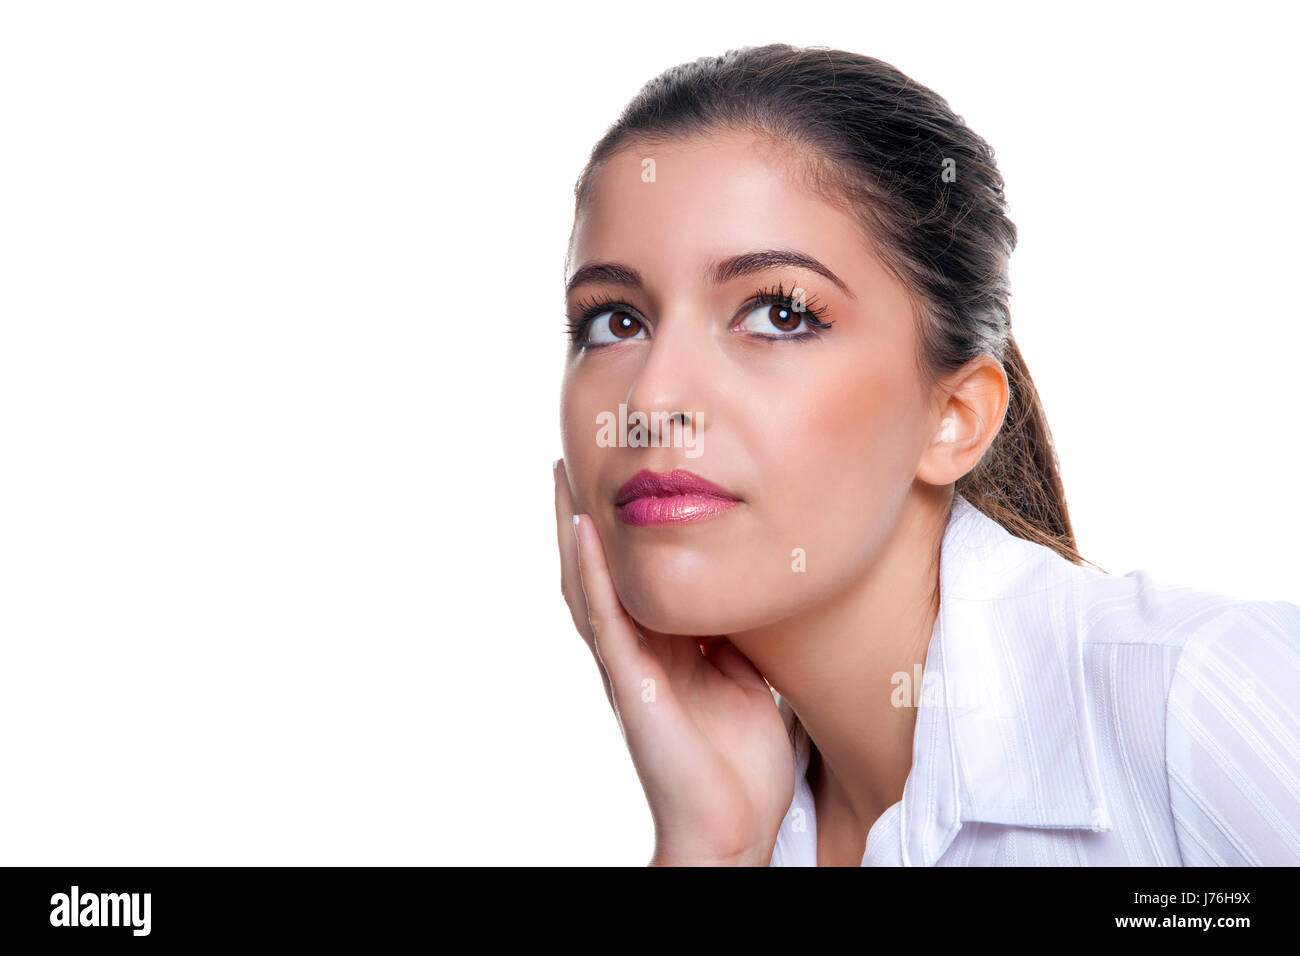 woman idea perspective point of view approach view opinion angle contemplation - Stock Image